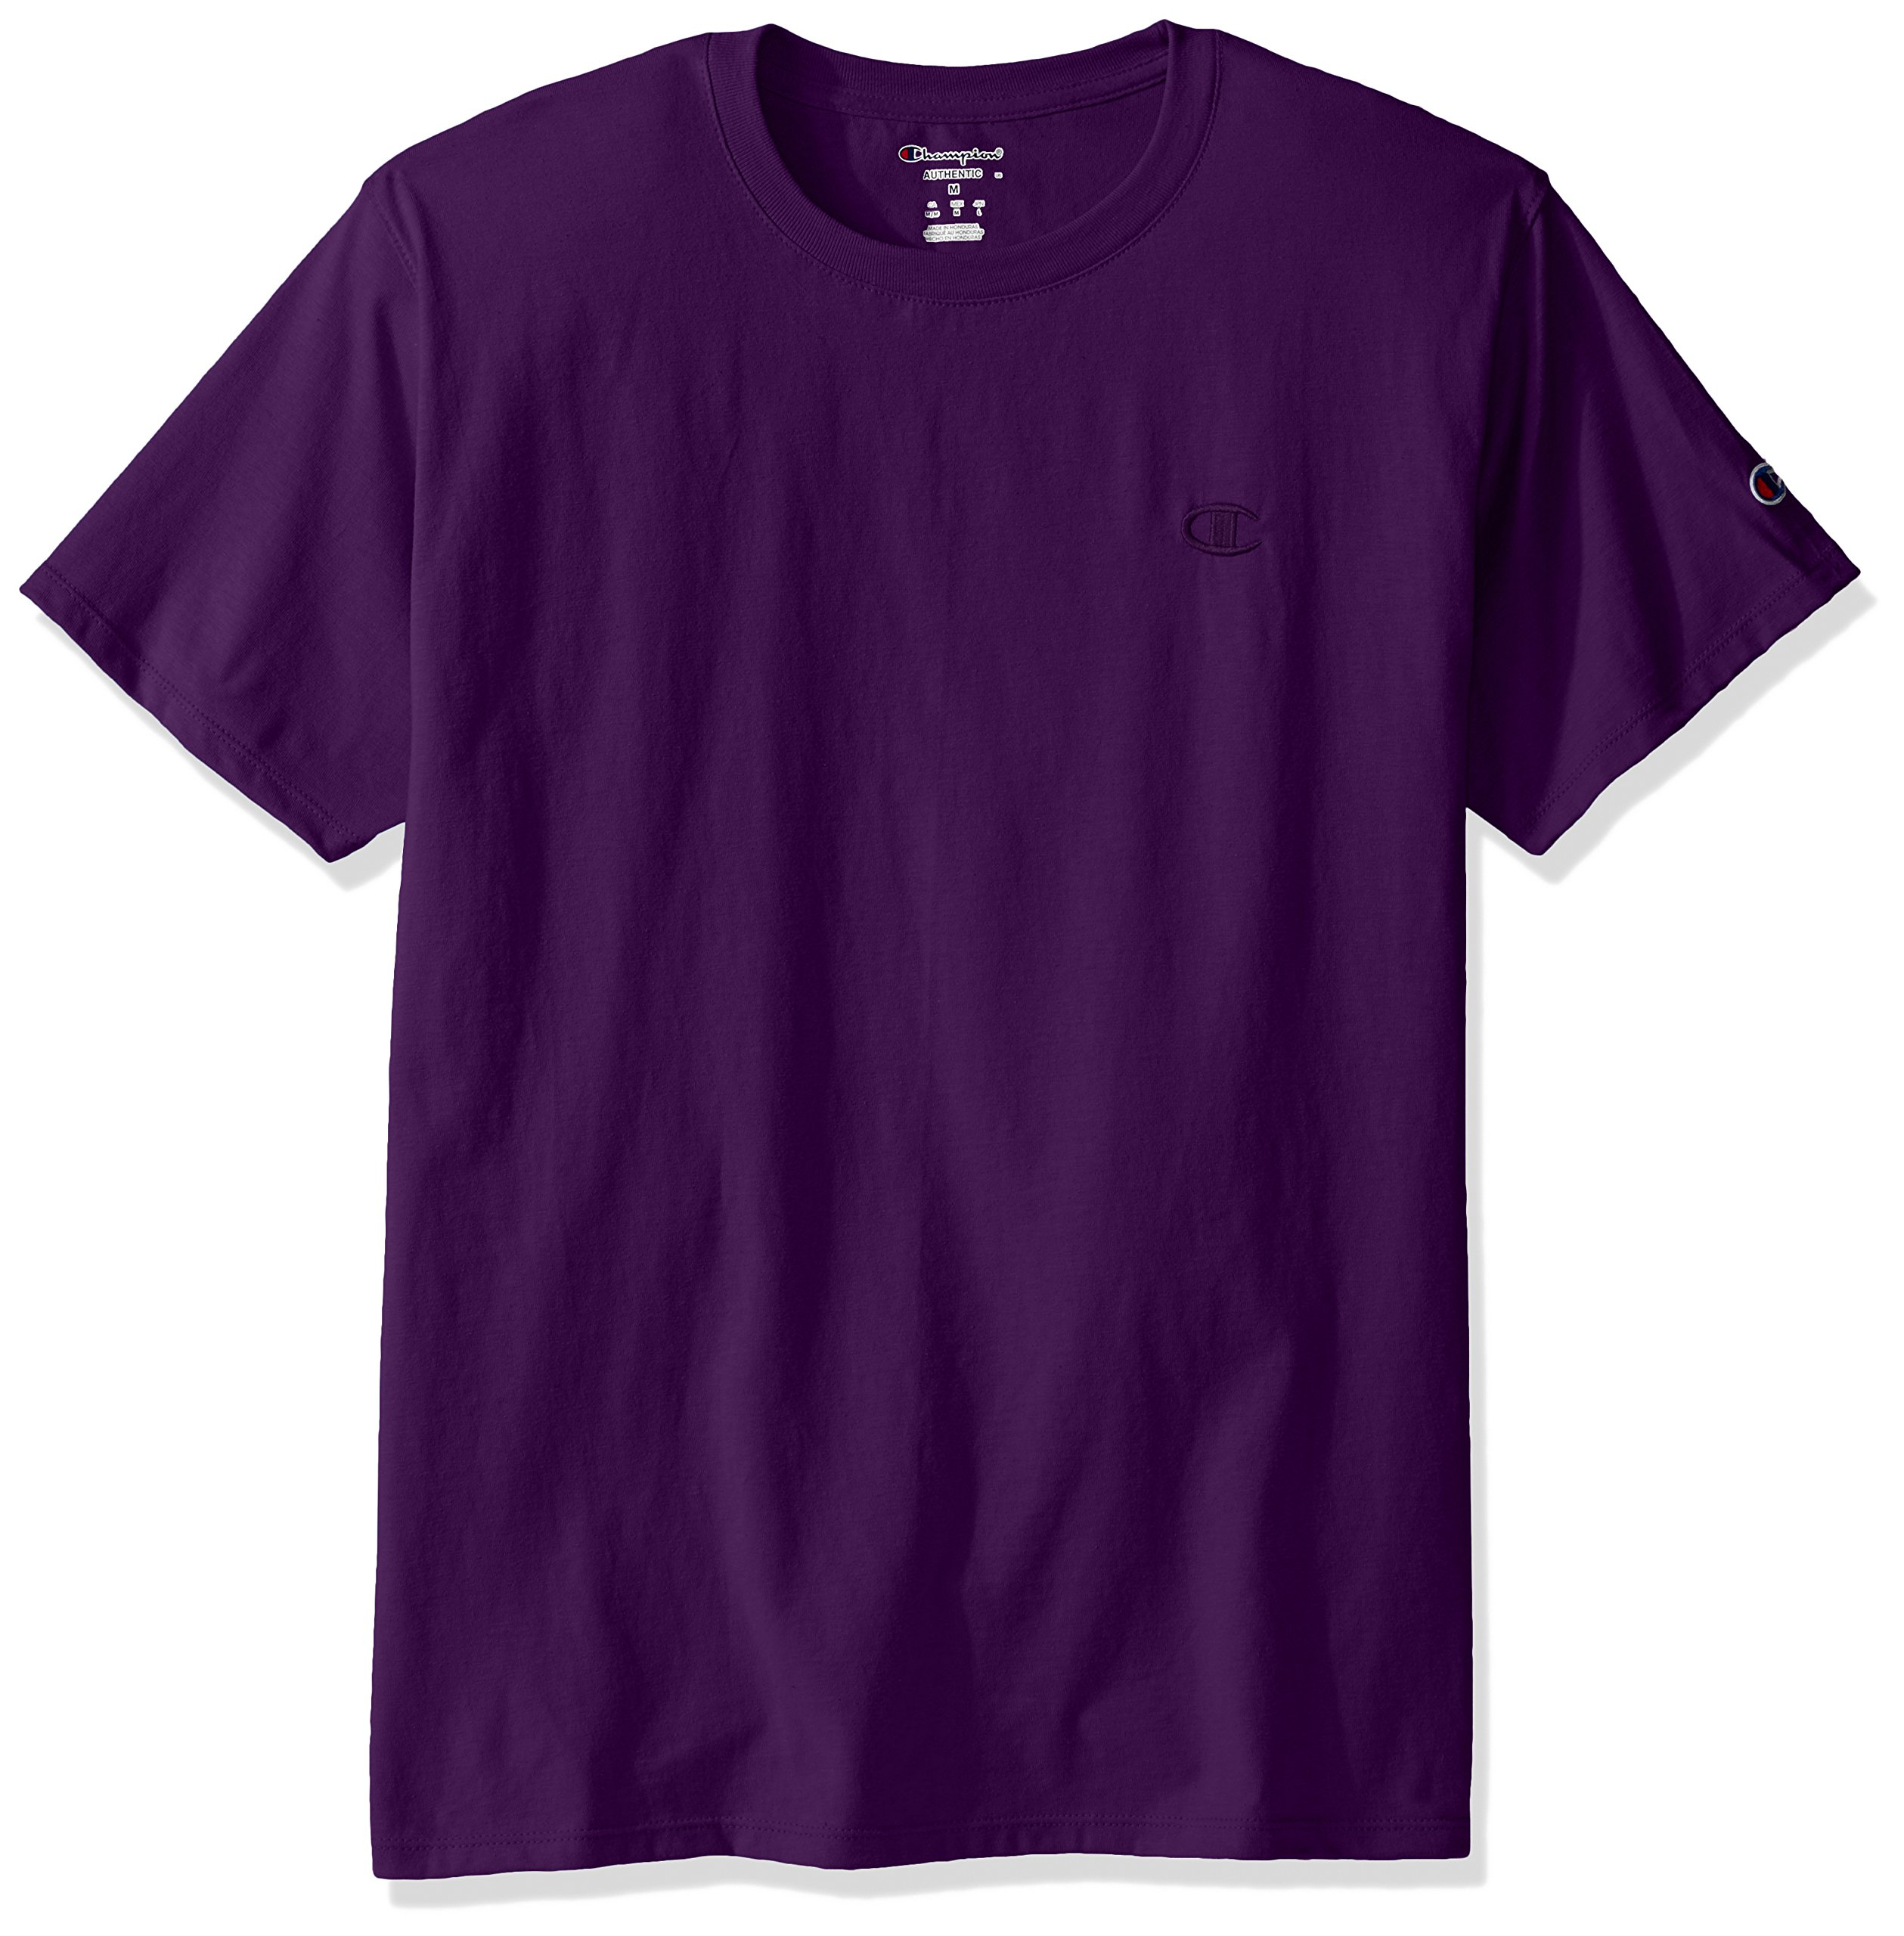 Champion Men's Classic Jersey T-Shirt, Purple Pr, M by Champion